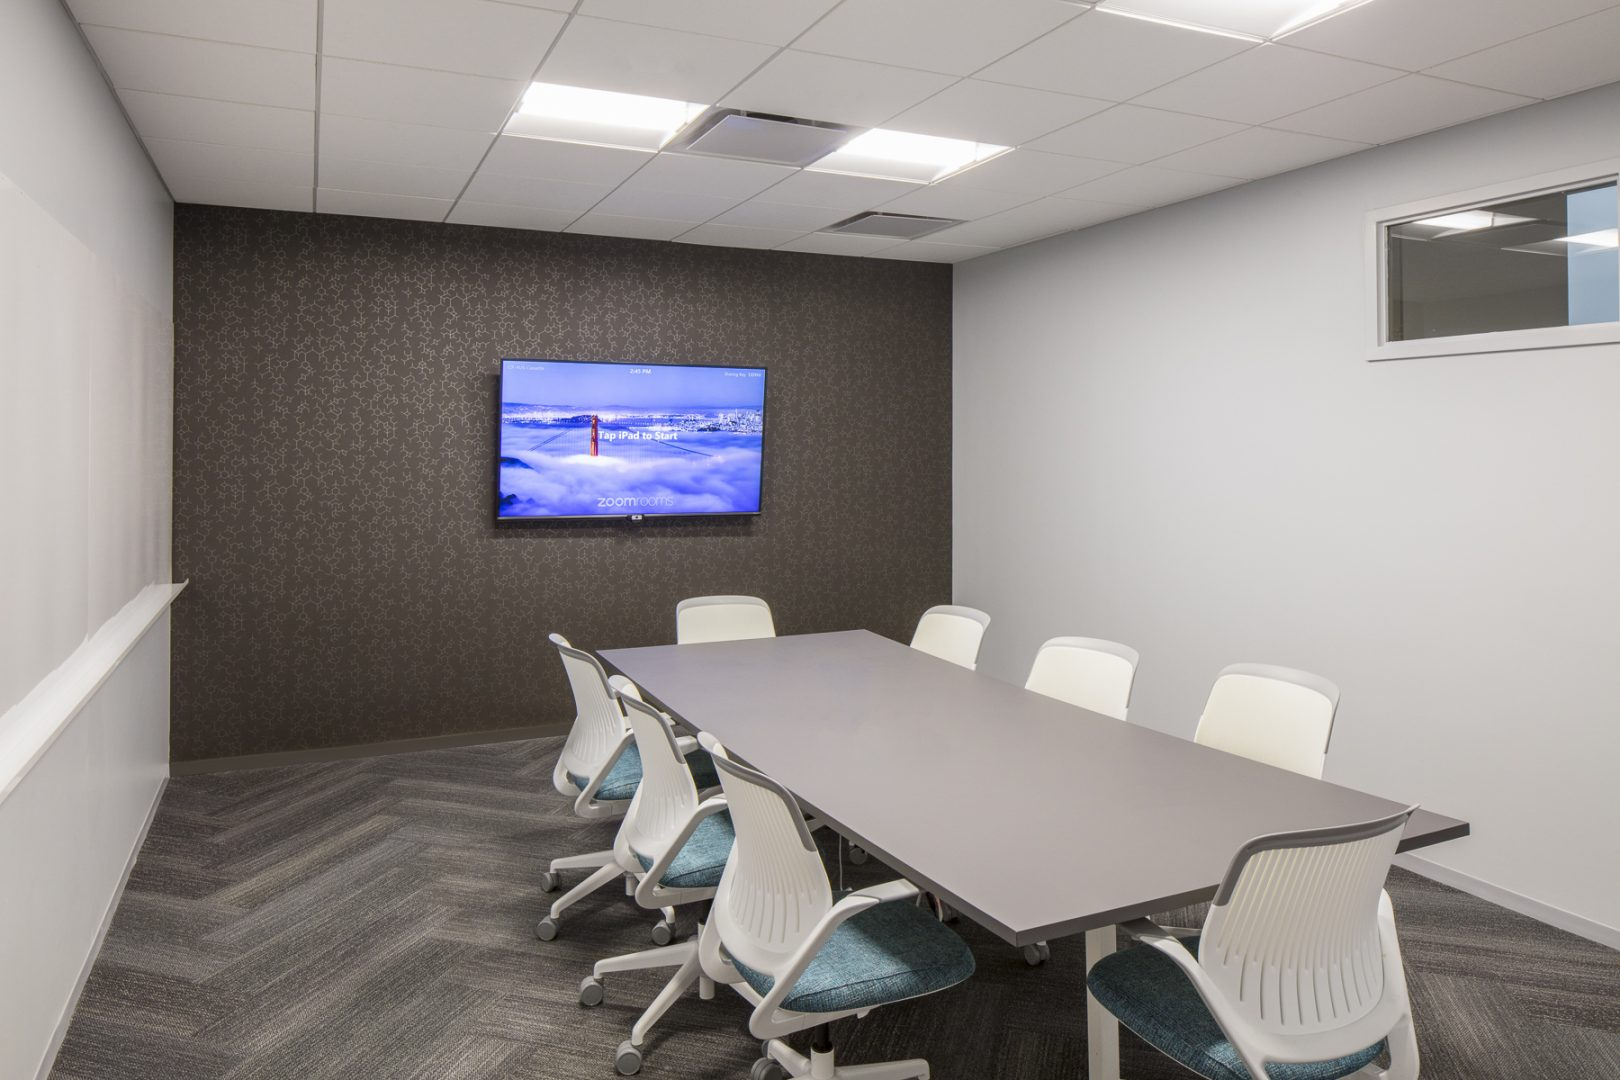 Corporate Technology Interior Design Magento Austin Small Meeting Room Chevron Floor Planks